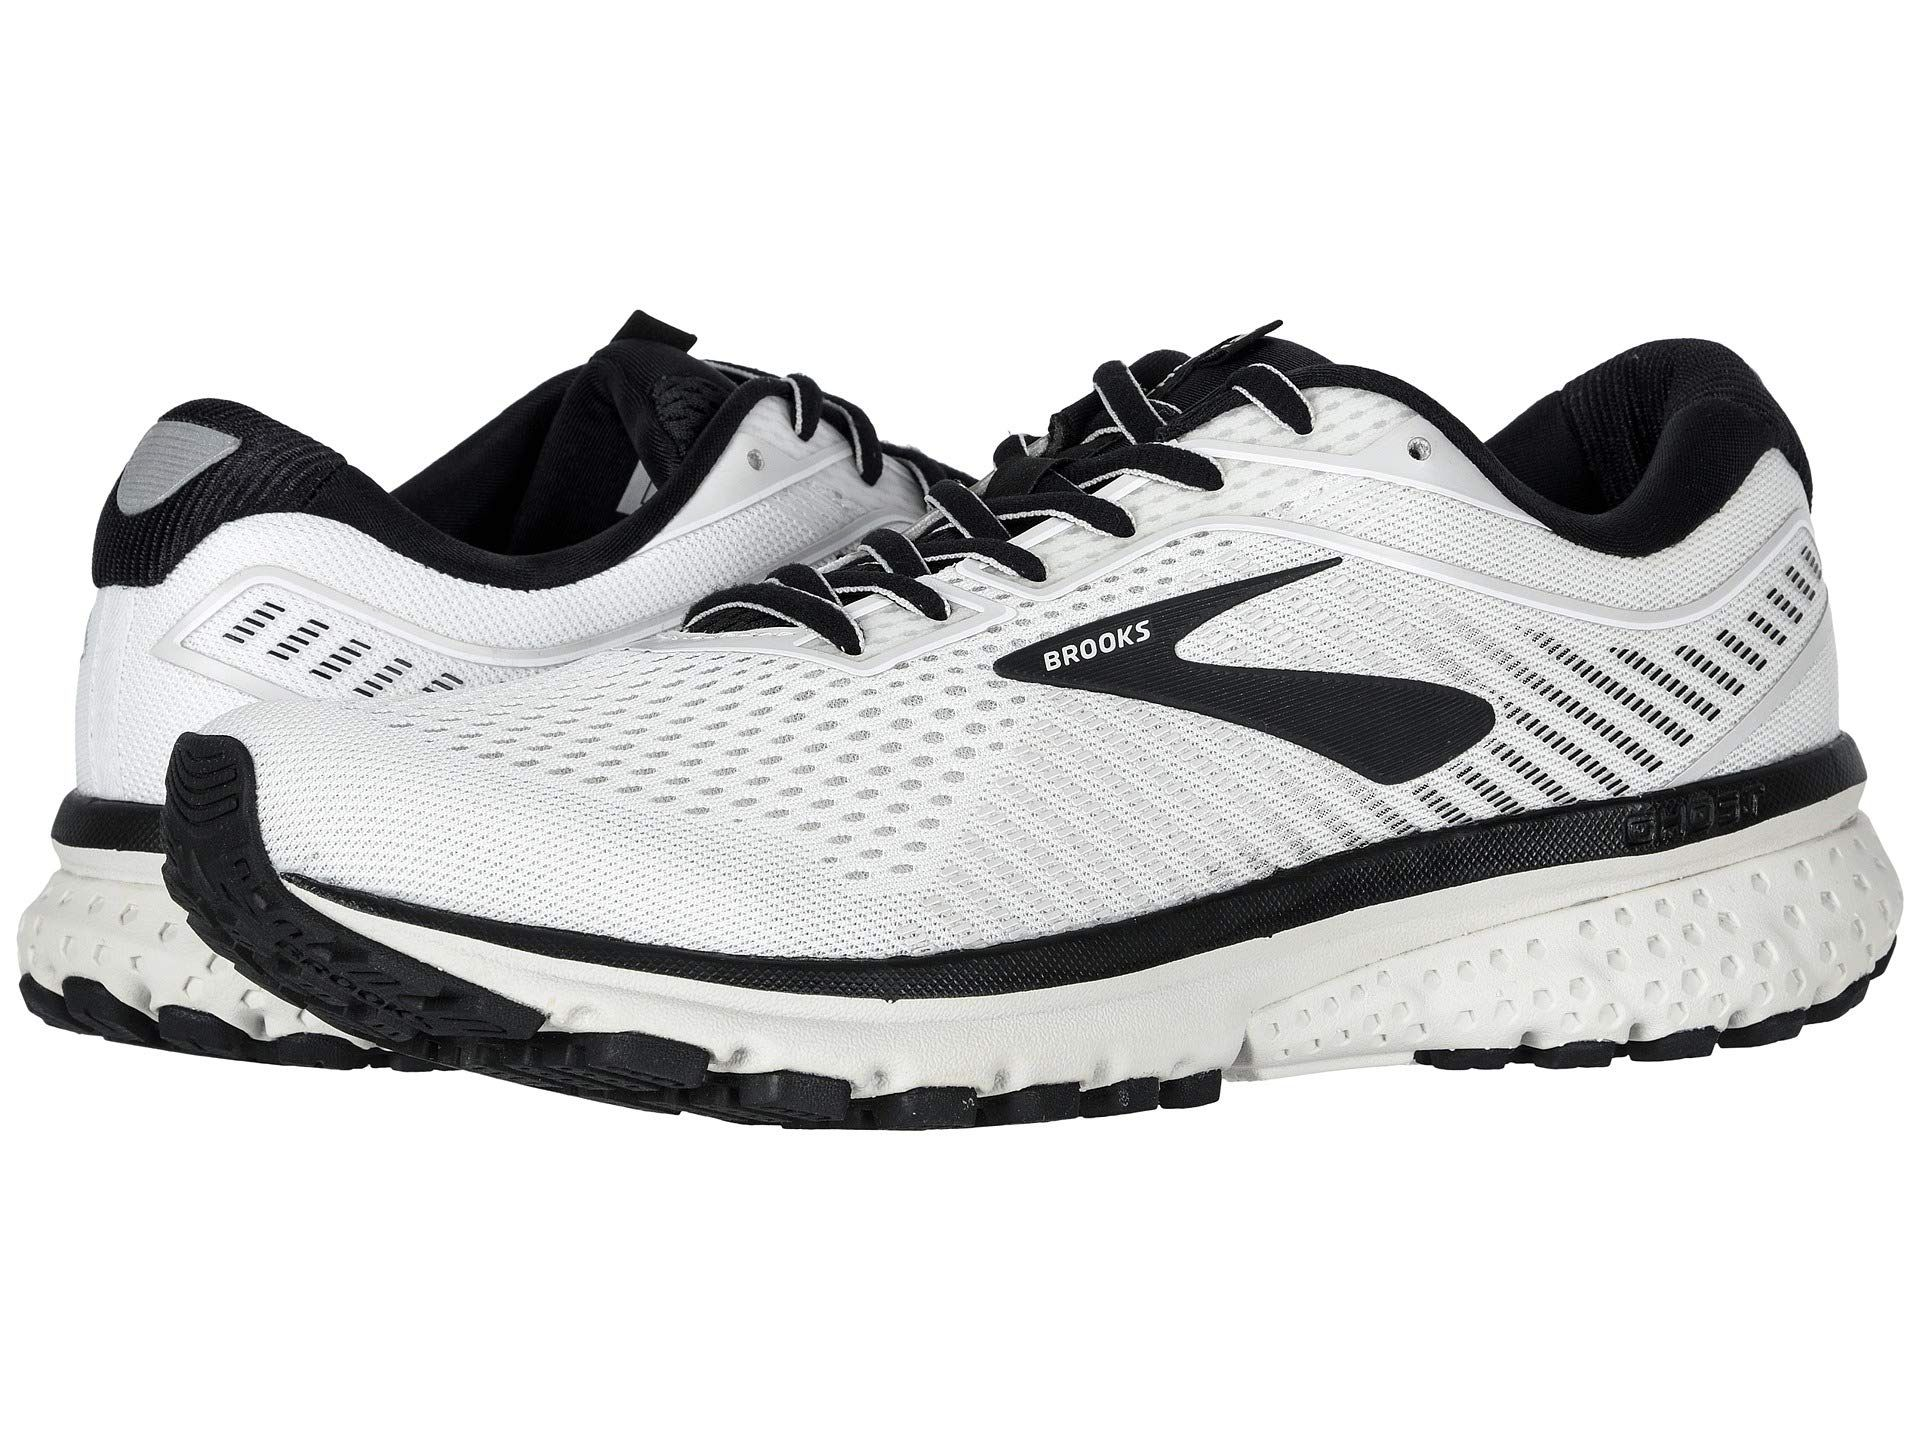 15 Best Running Shoes for Men to Train for Races in 2020